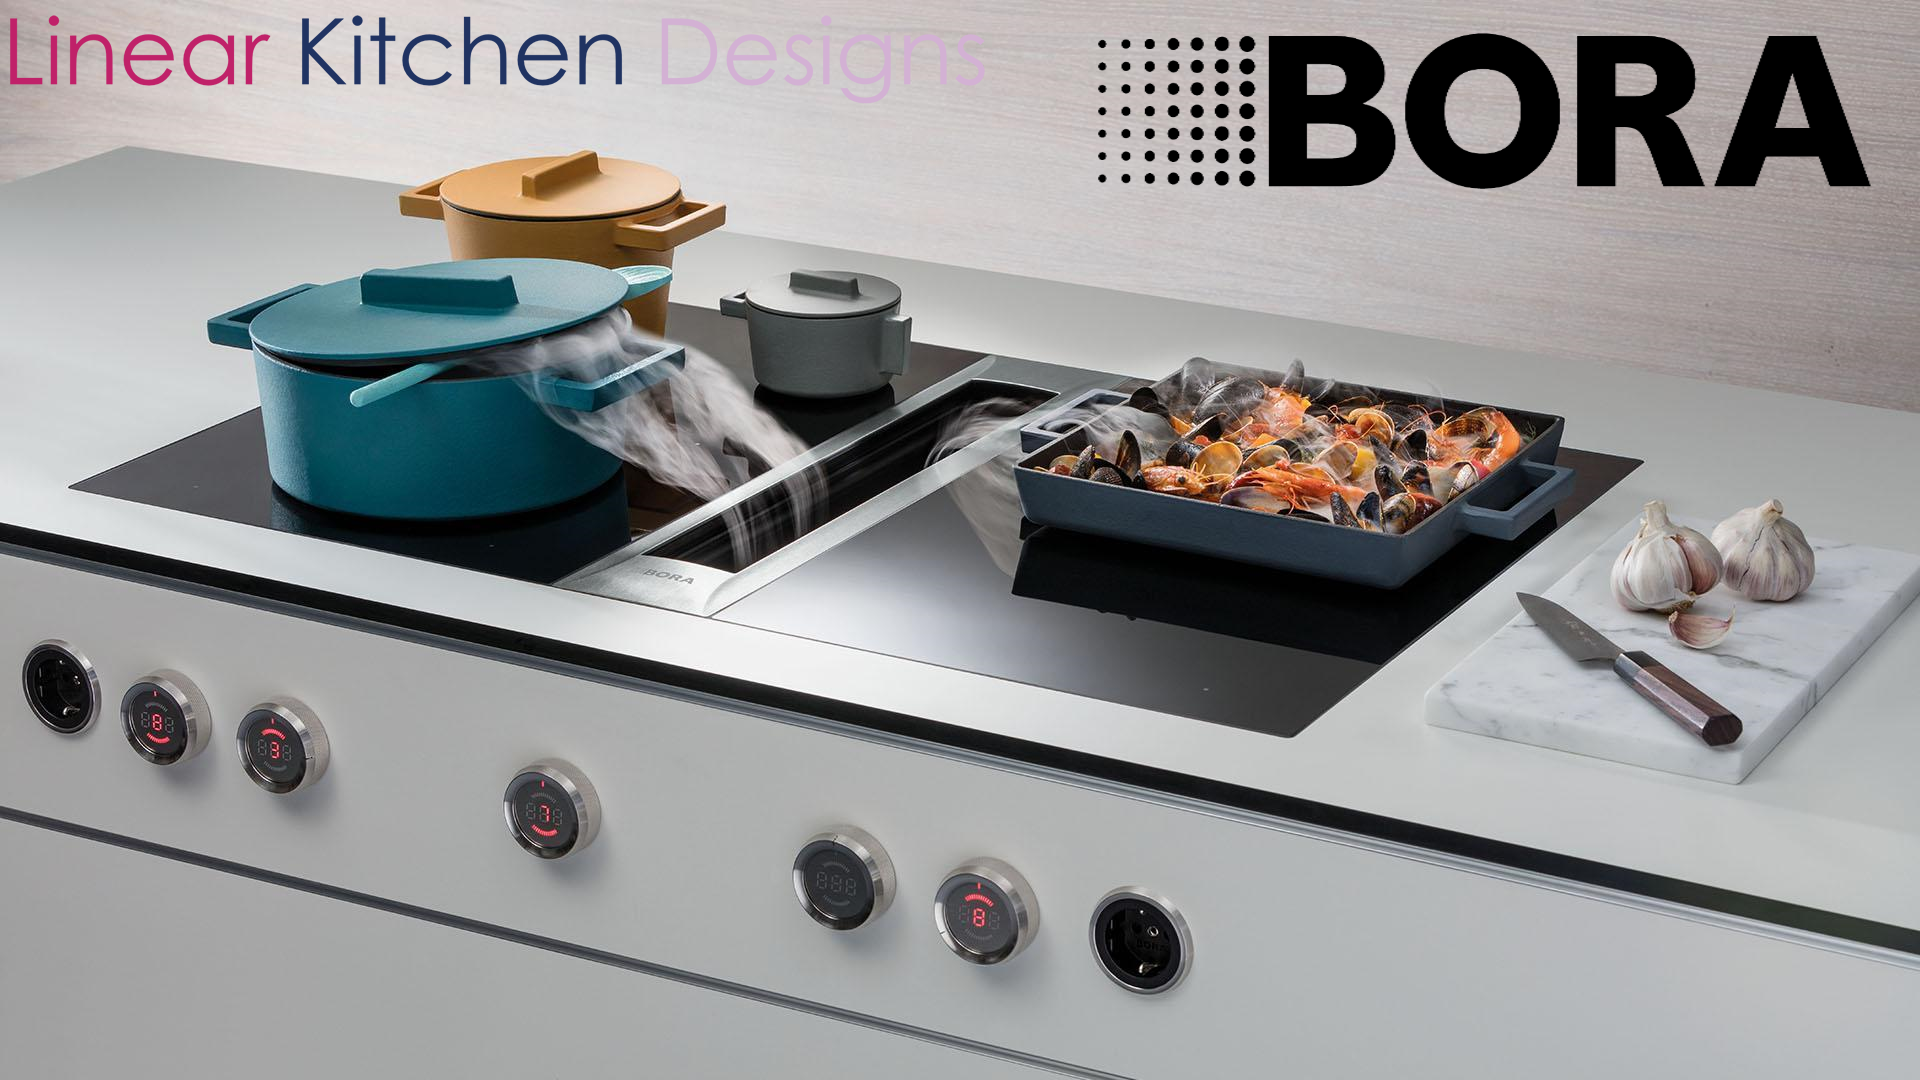 Click for more information on Bora hobs with built in extractors